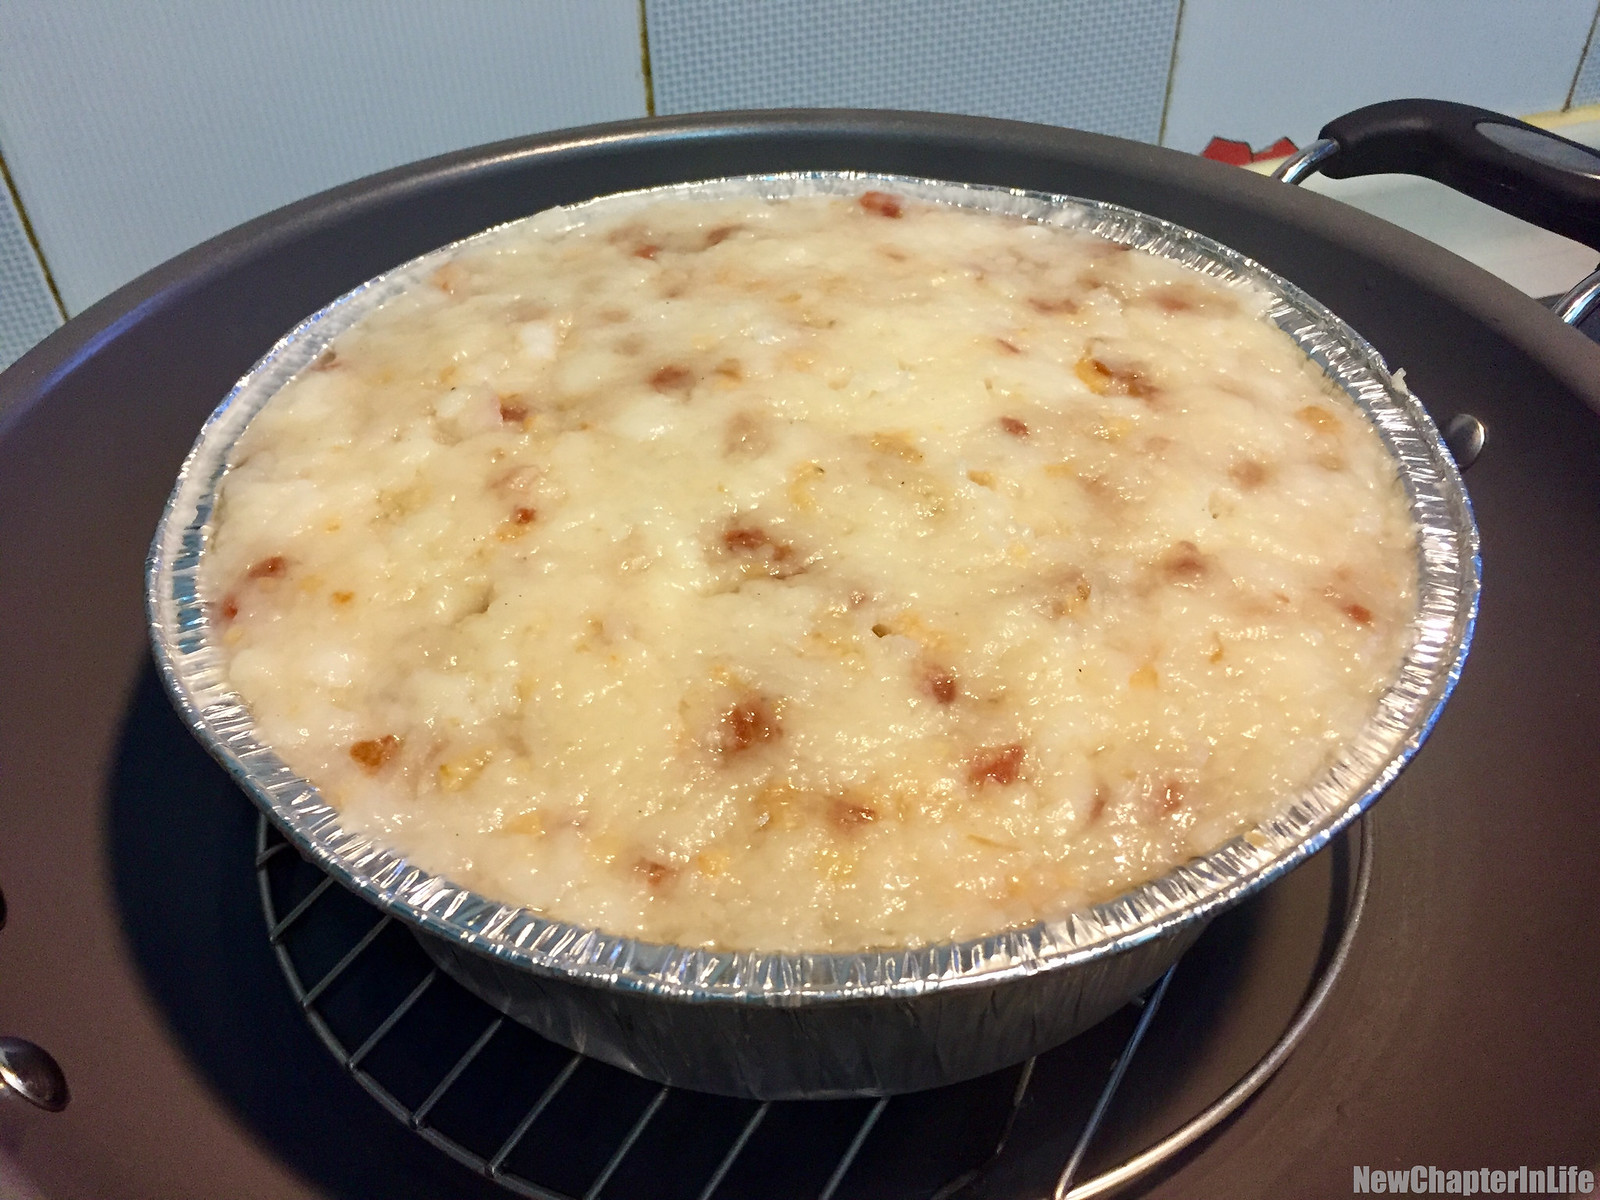 Freshly steamed Turnip Rice Pudding 新鮮熱辣的蒸蘿蔔糕